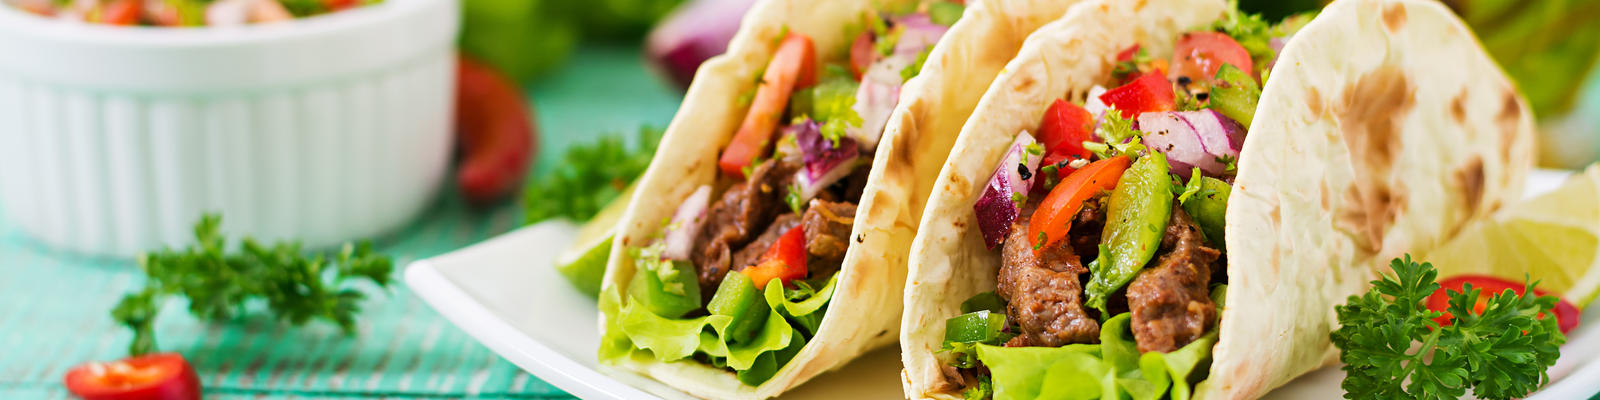 Best Cruise Ships for Latin American and Mexican Food (Photo: Timolina/Shutterstock.com)